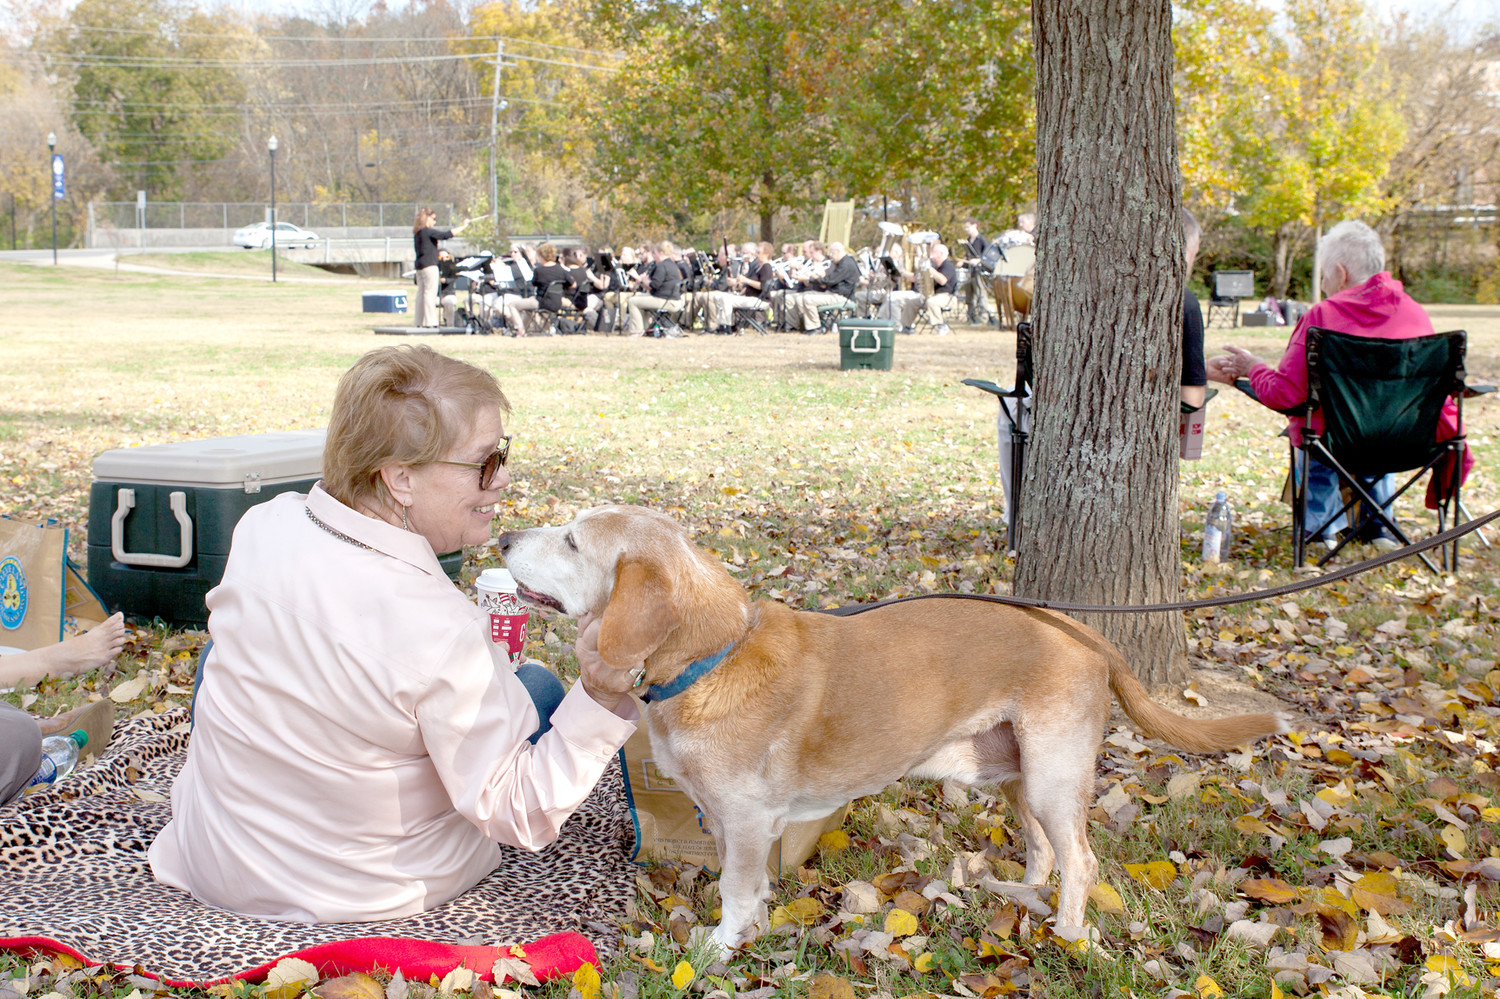 ONE OF THE ATTENDEES of the Cleveland 175th celebration makes a four-legged friend while listening to the Cleveland Pops perform on Sunday.